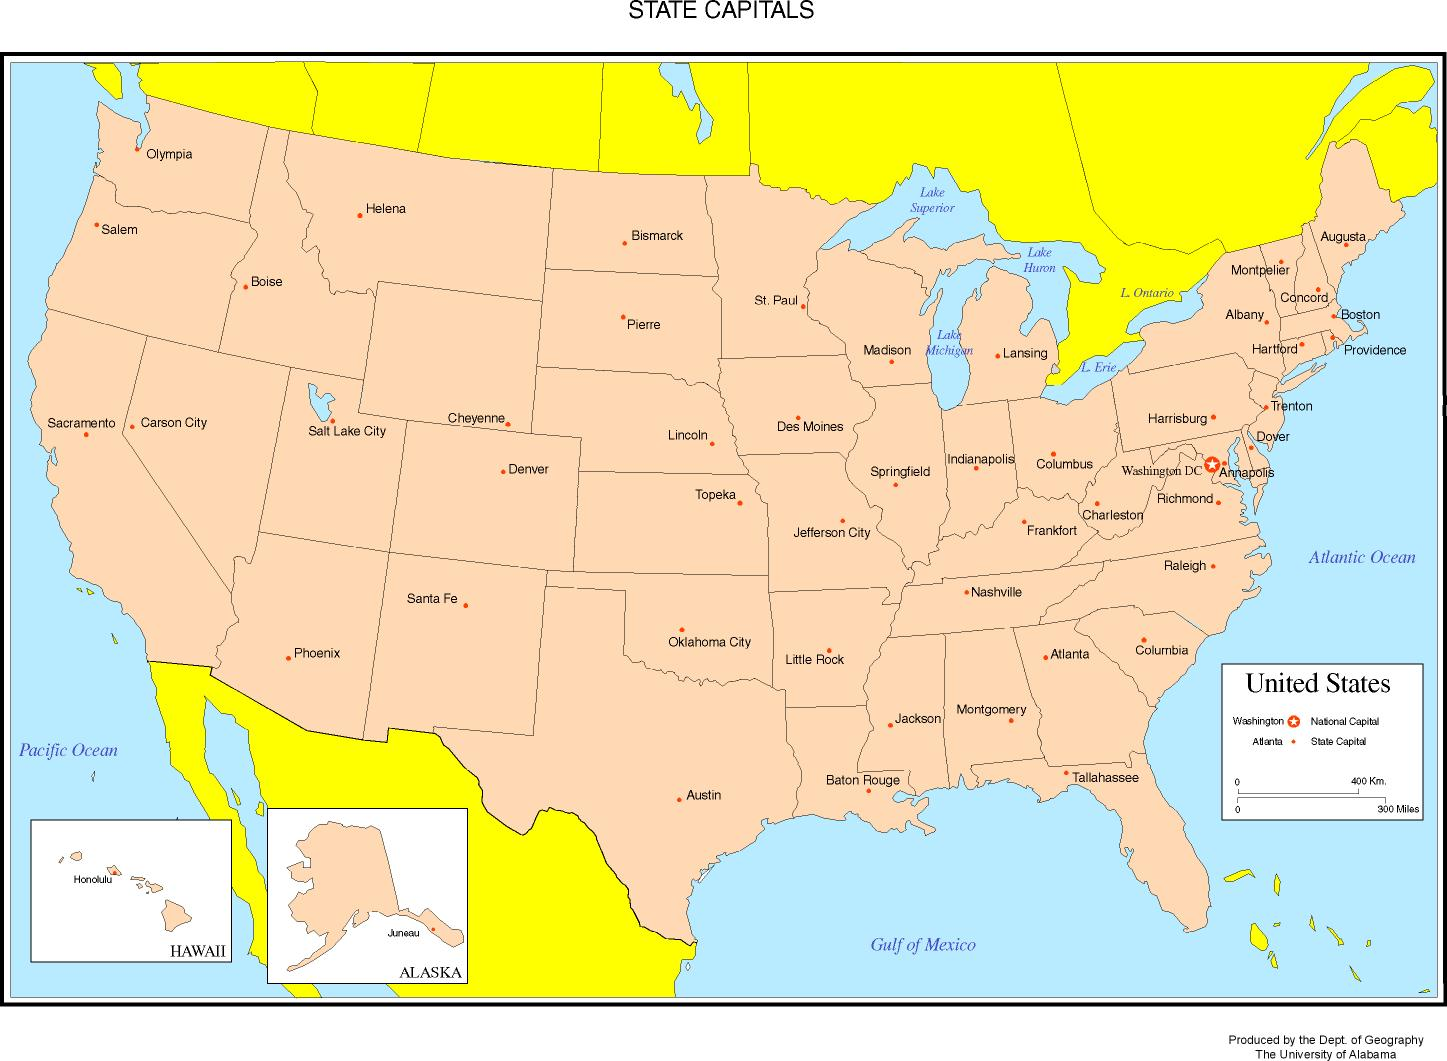 Maps Of The United States - States map of the united states